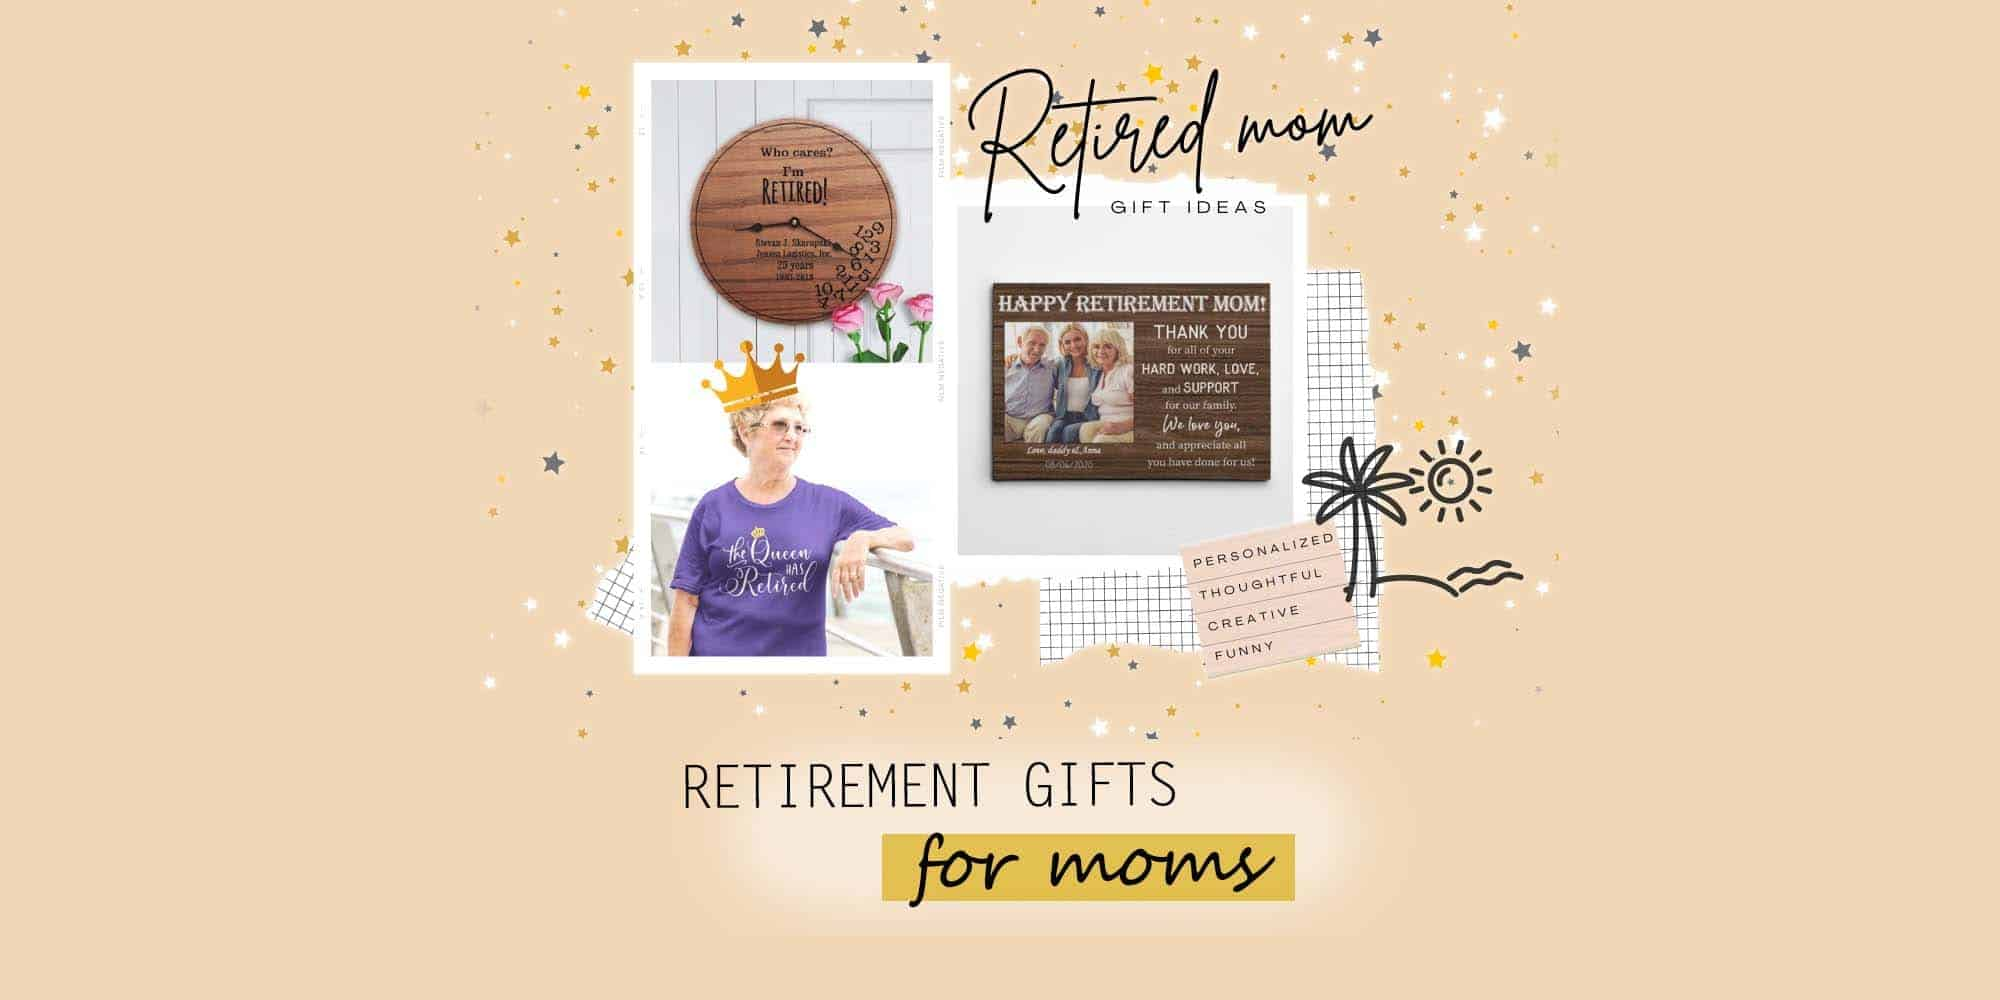 25 Best Retirement Gifts for Your Mom in 2021